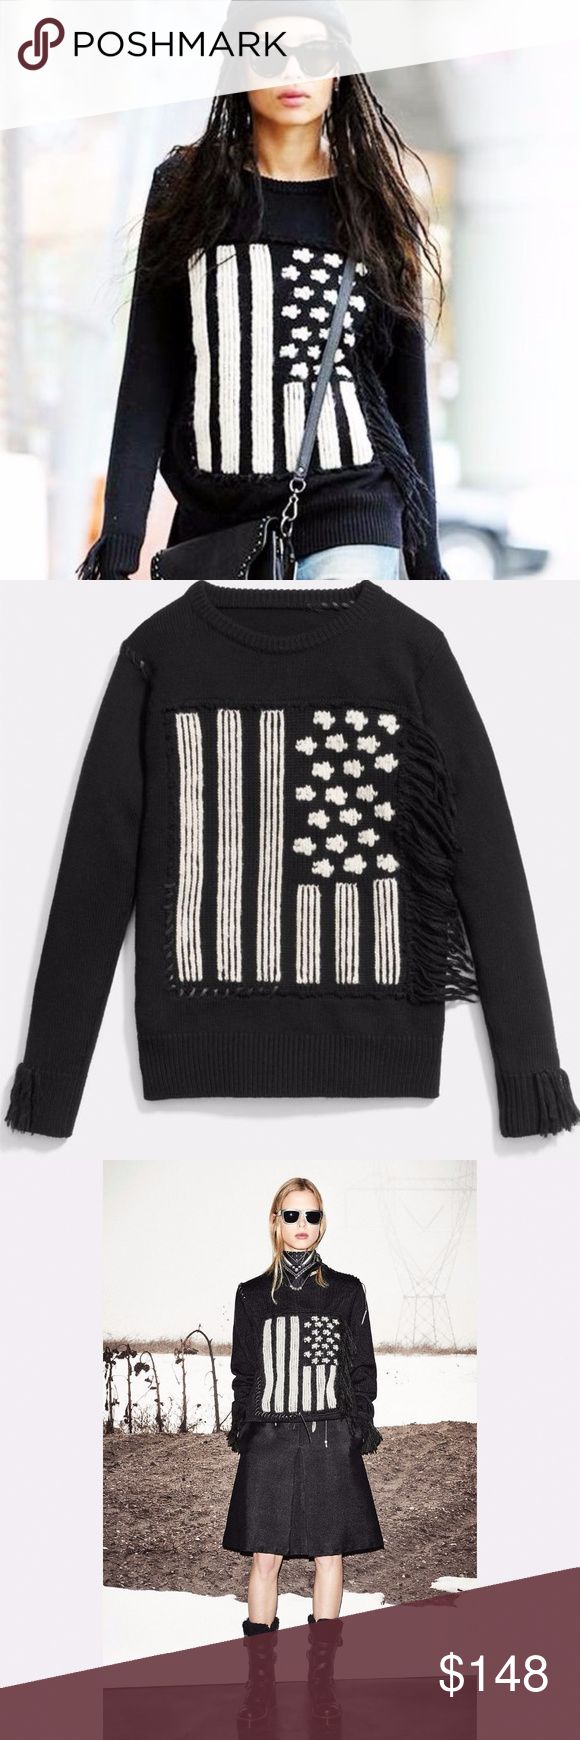 NWT Coach Flag Intarsia Fringe Merino Wool Sweater The best sweater! Pure merino wool in a chunky knit imbues this striking rendering of the stars and stripes with luxurious softness and exceptional warmth. Its monochrome motif is intarsia-knit by hand for clear, inlaid fields of contrast color, then hand-appliquéd using Rip and Repair baseball-stitch details—our exclusive leather homage to the great American pastime. Hand-applied fringe completes its design.   Brand New with tags. Coach…